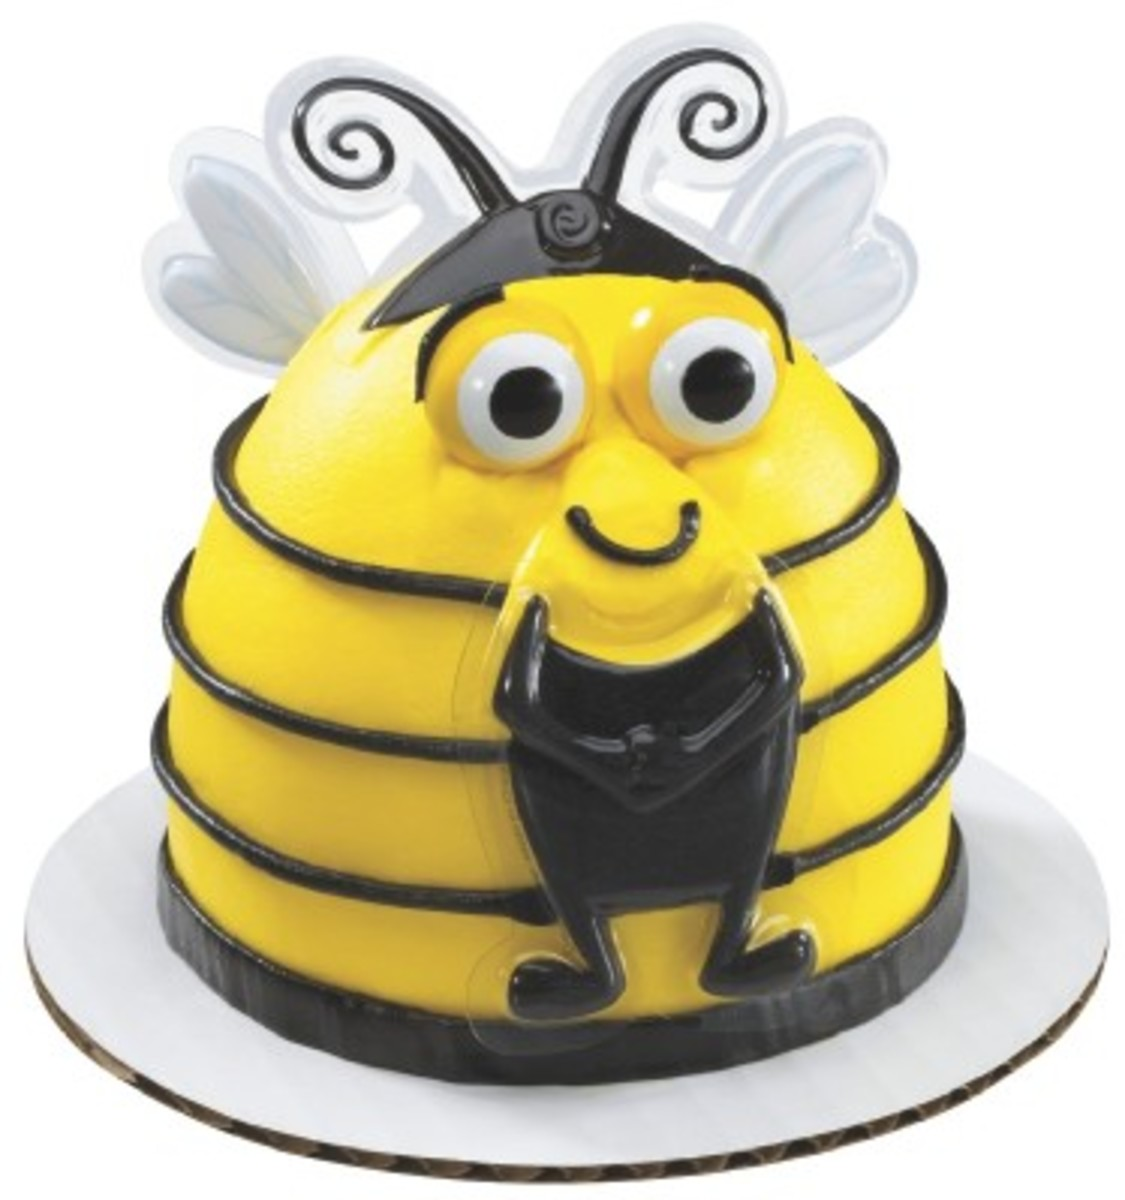 Bumble Bee Themed Birthday Cakes